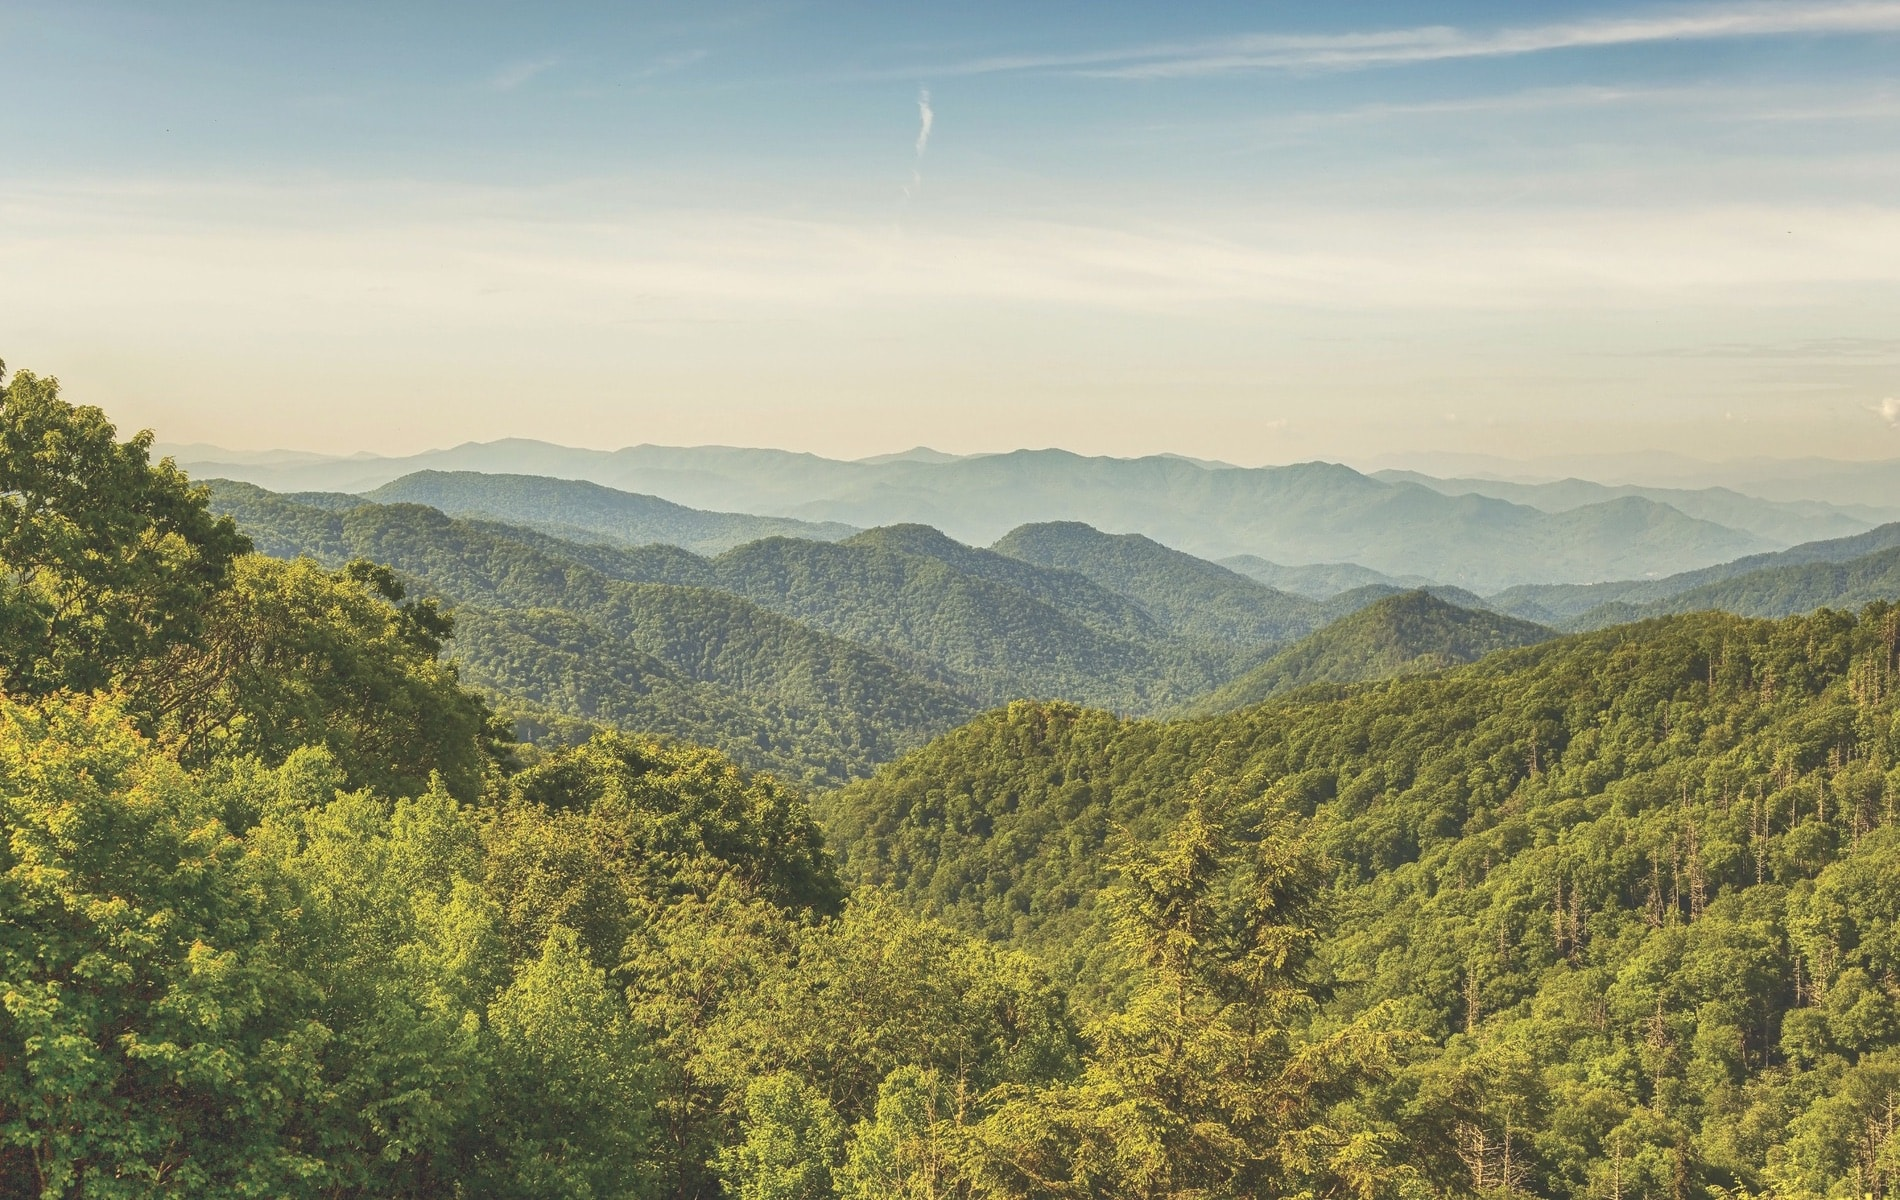 The Great Smoky Mountains as seen from the top of Clingmans Dome on the border of Tennessee and North Carolina.